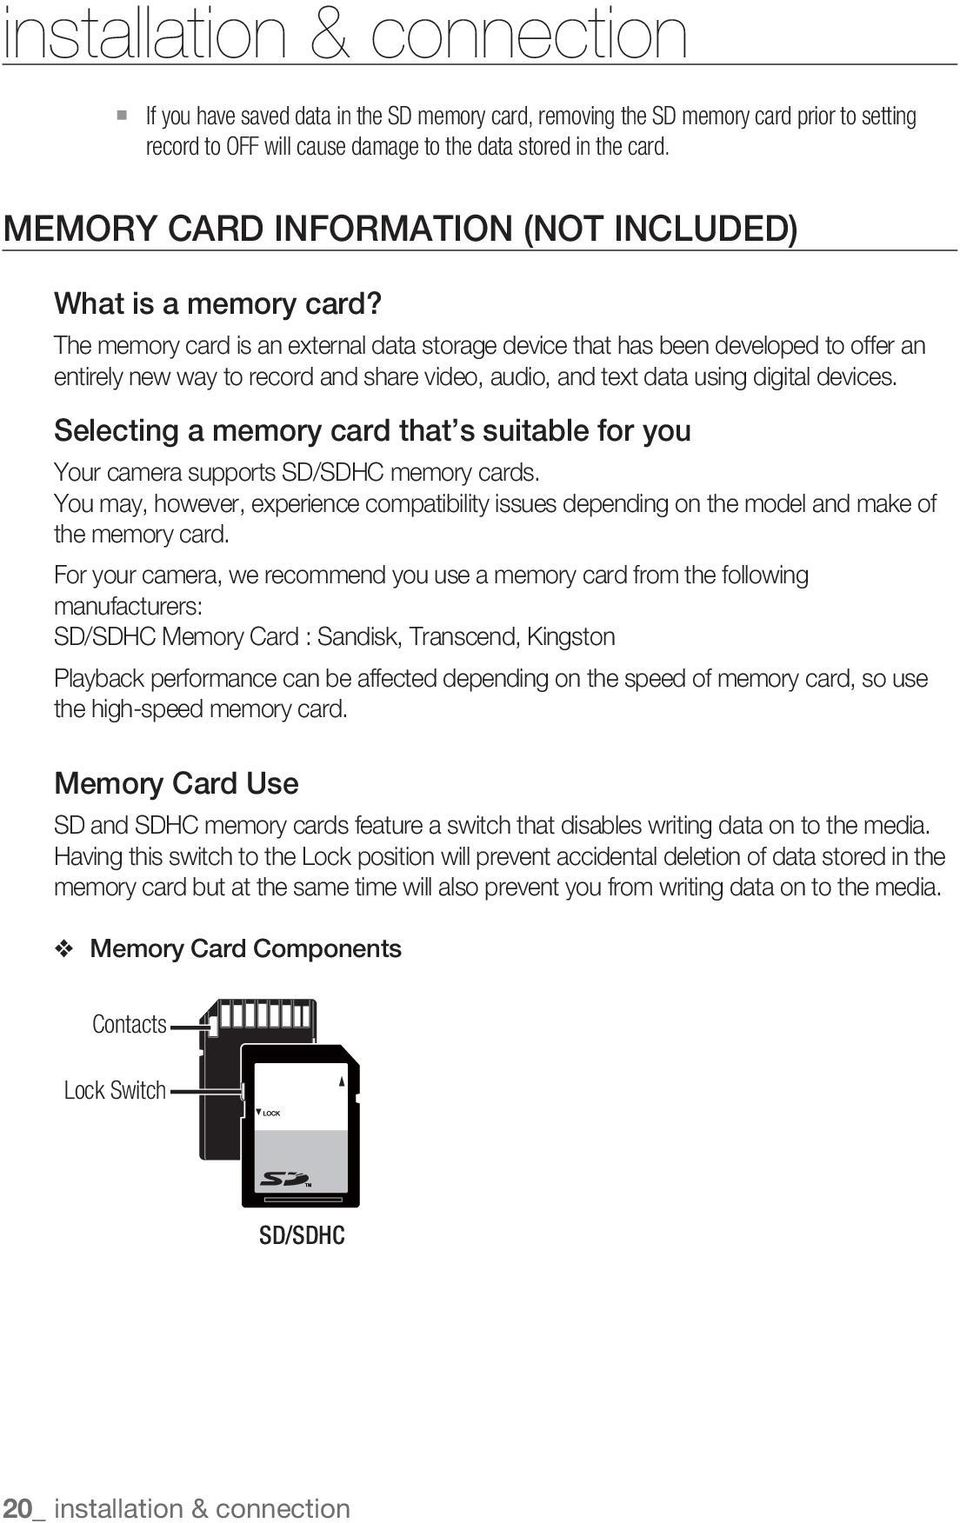 The memory card is an external data storage device that has been developed to offer an entirely new way to record and share video, audio, and text data using digital devices.